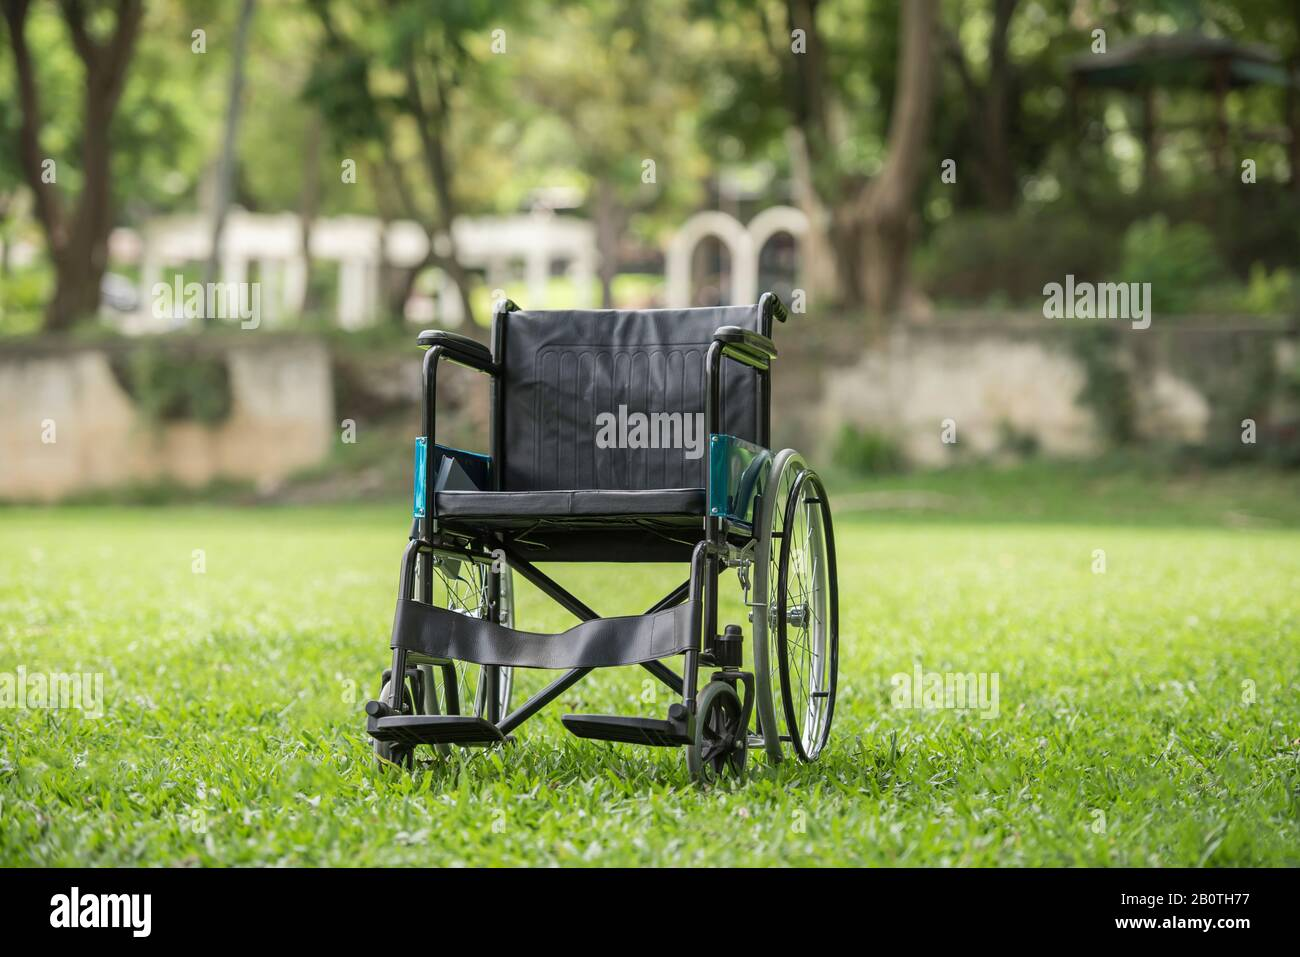 Empty wheelchair parked in park, Health care concept. Stock Photo